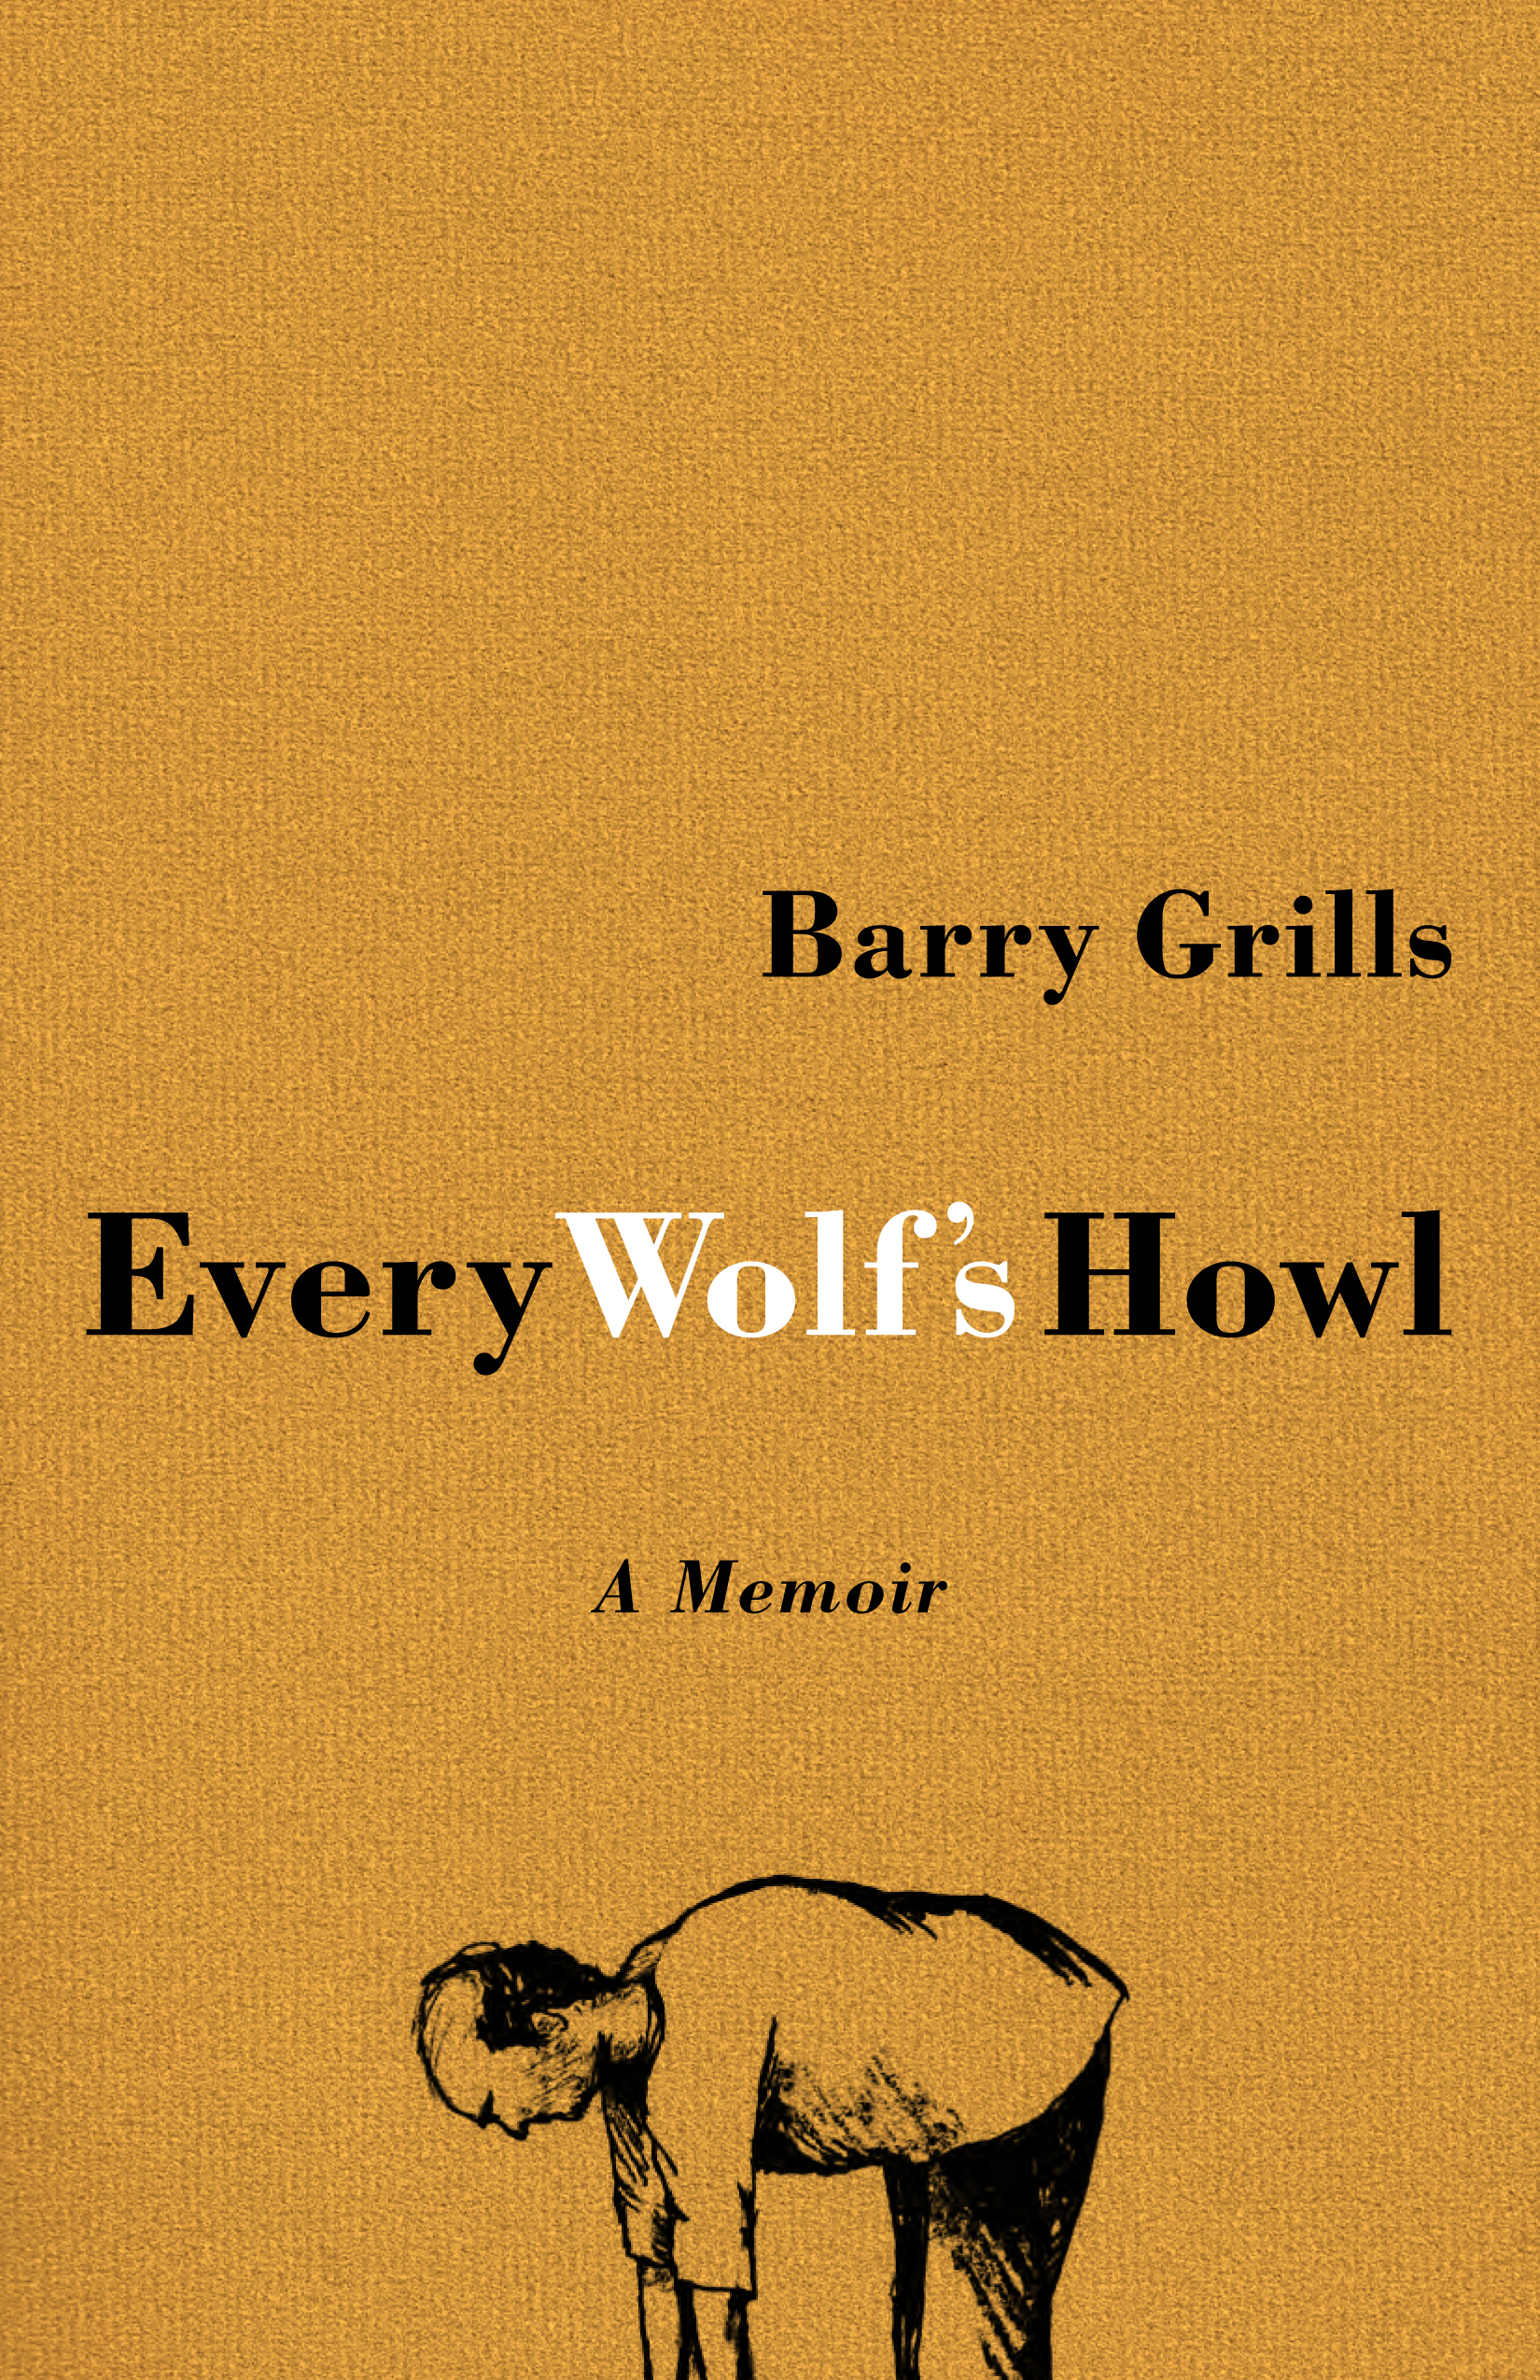 Every Wolf's Howl